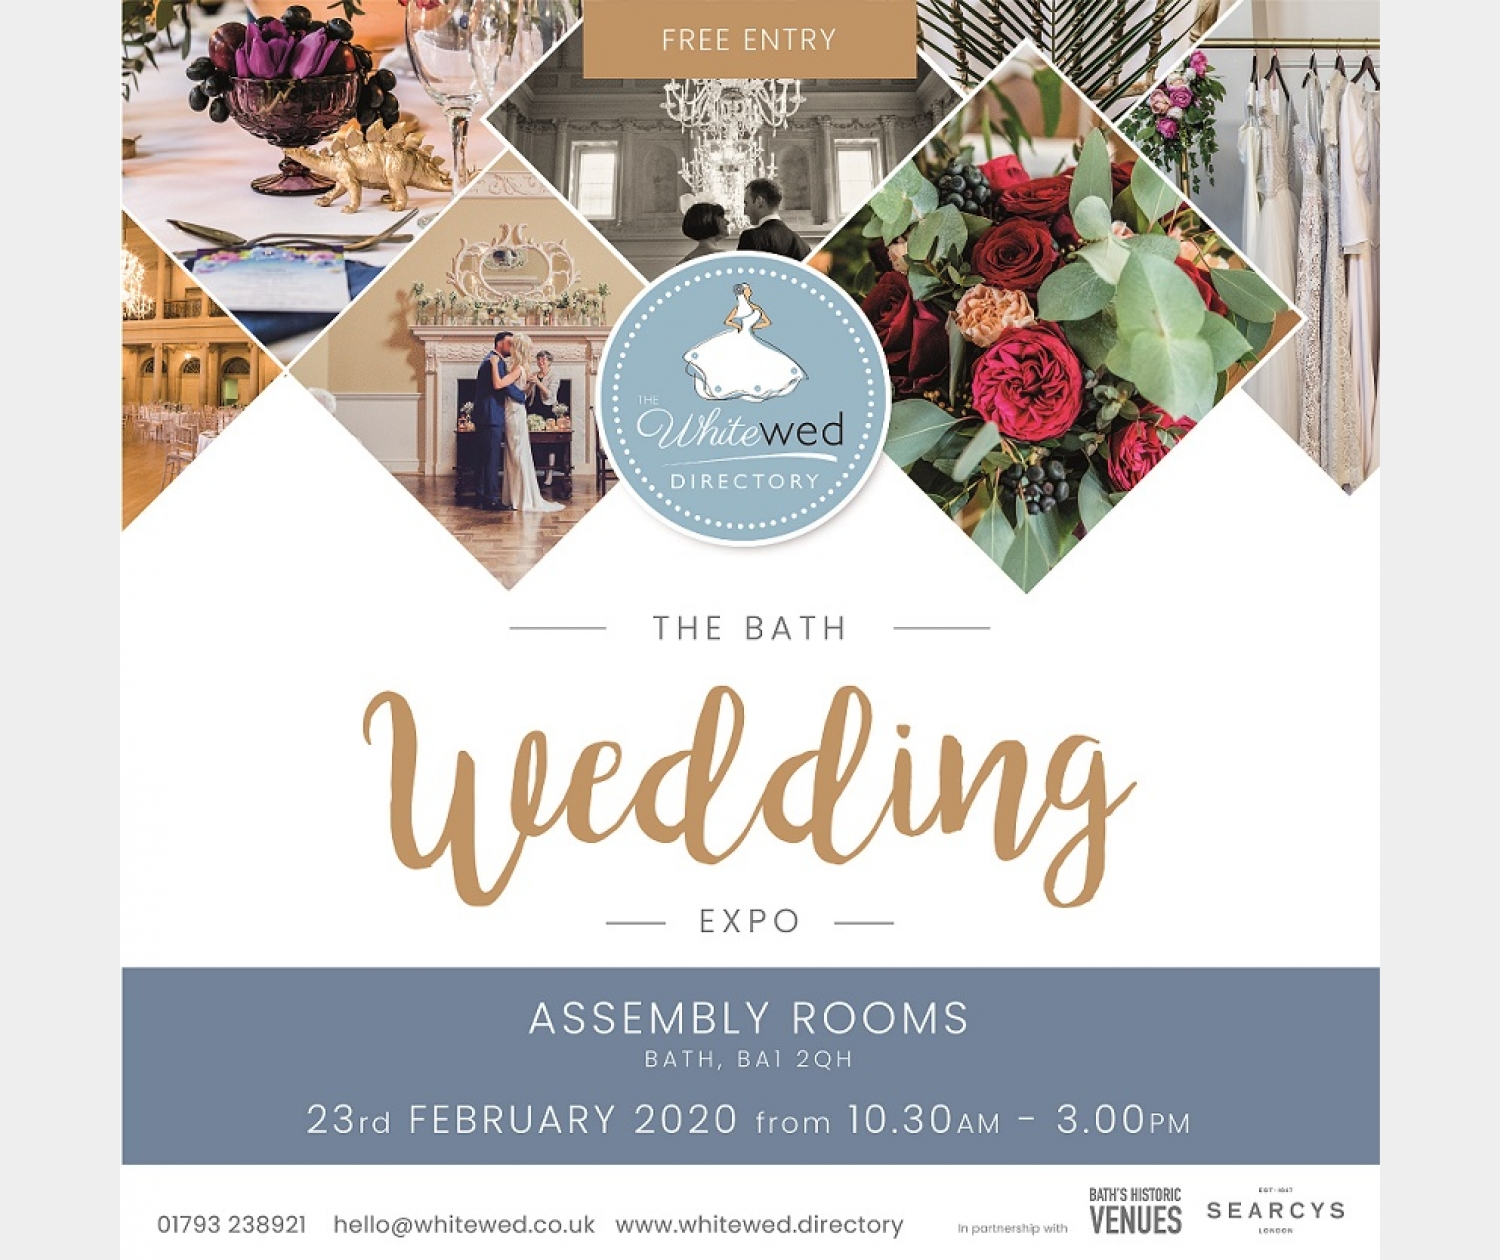 The Bath Wedding Expo at The Assembly Rooms